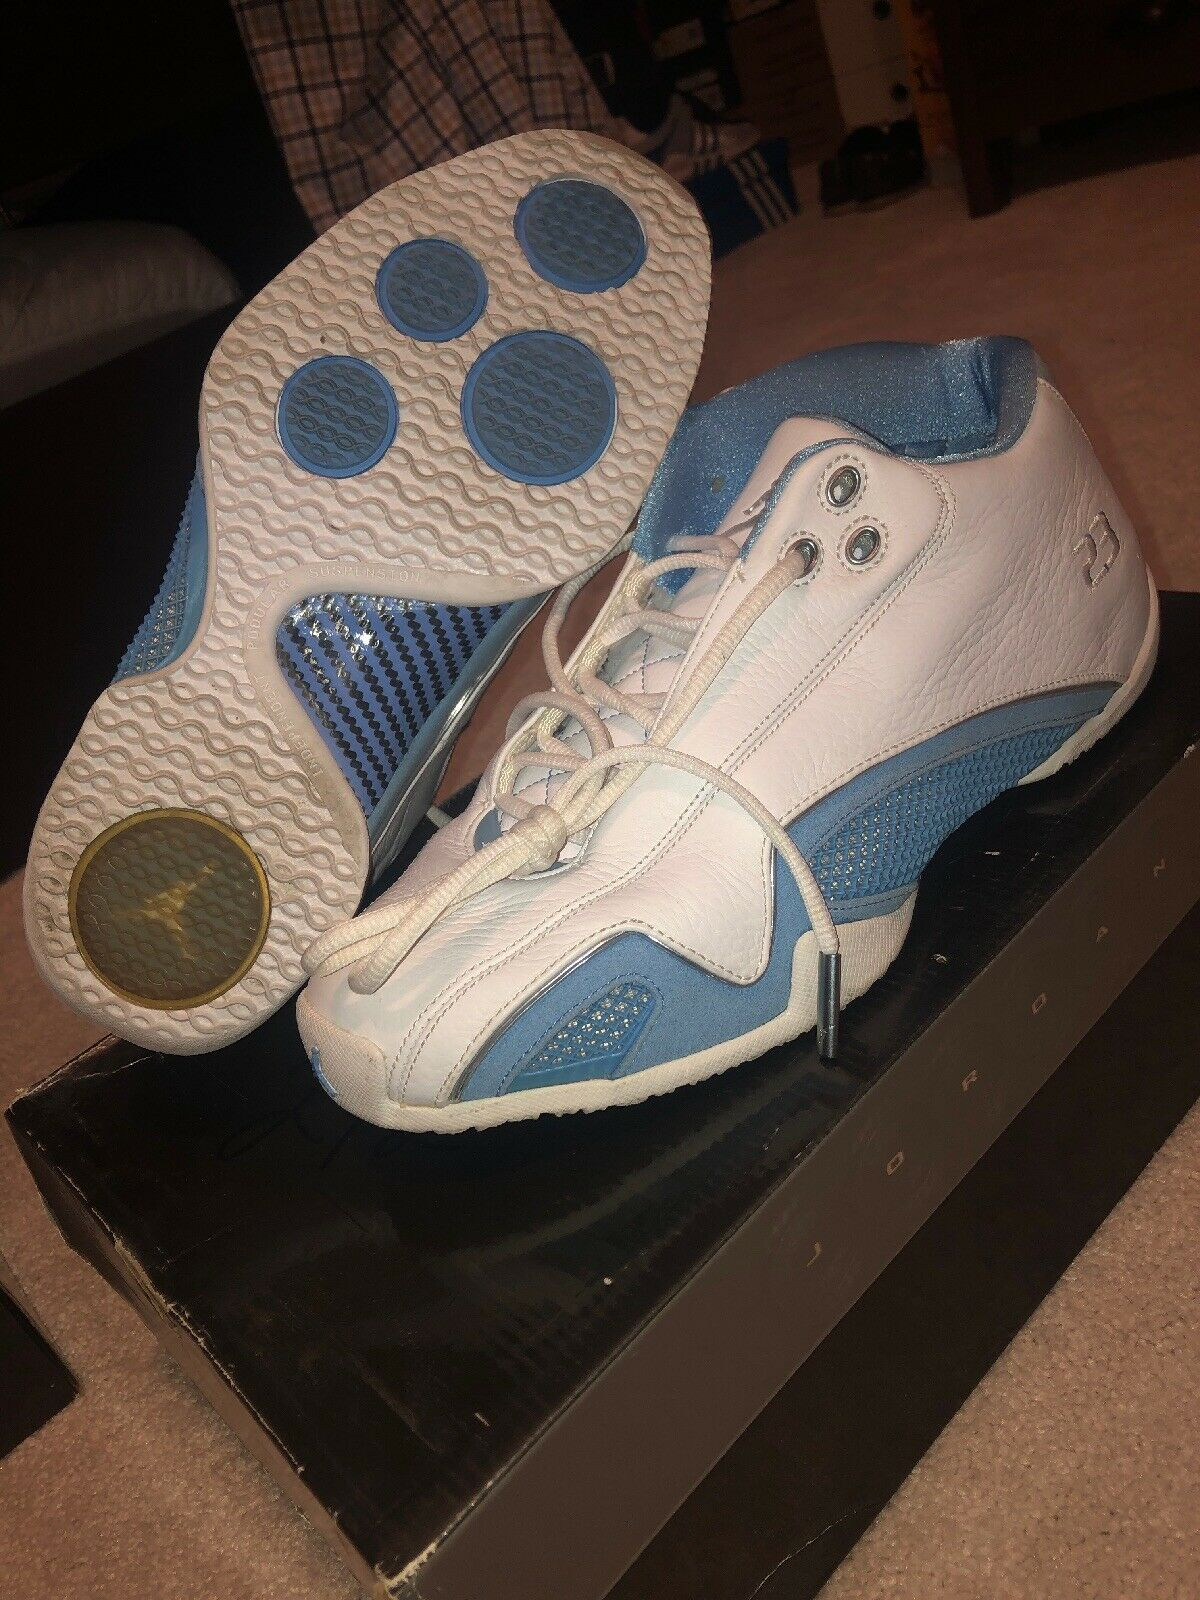 NIKE Air Jordan XXI 21 low White Carolina University bluee  Size 9.5